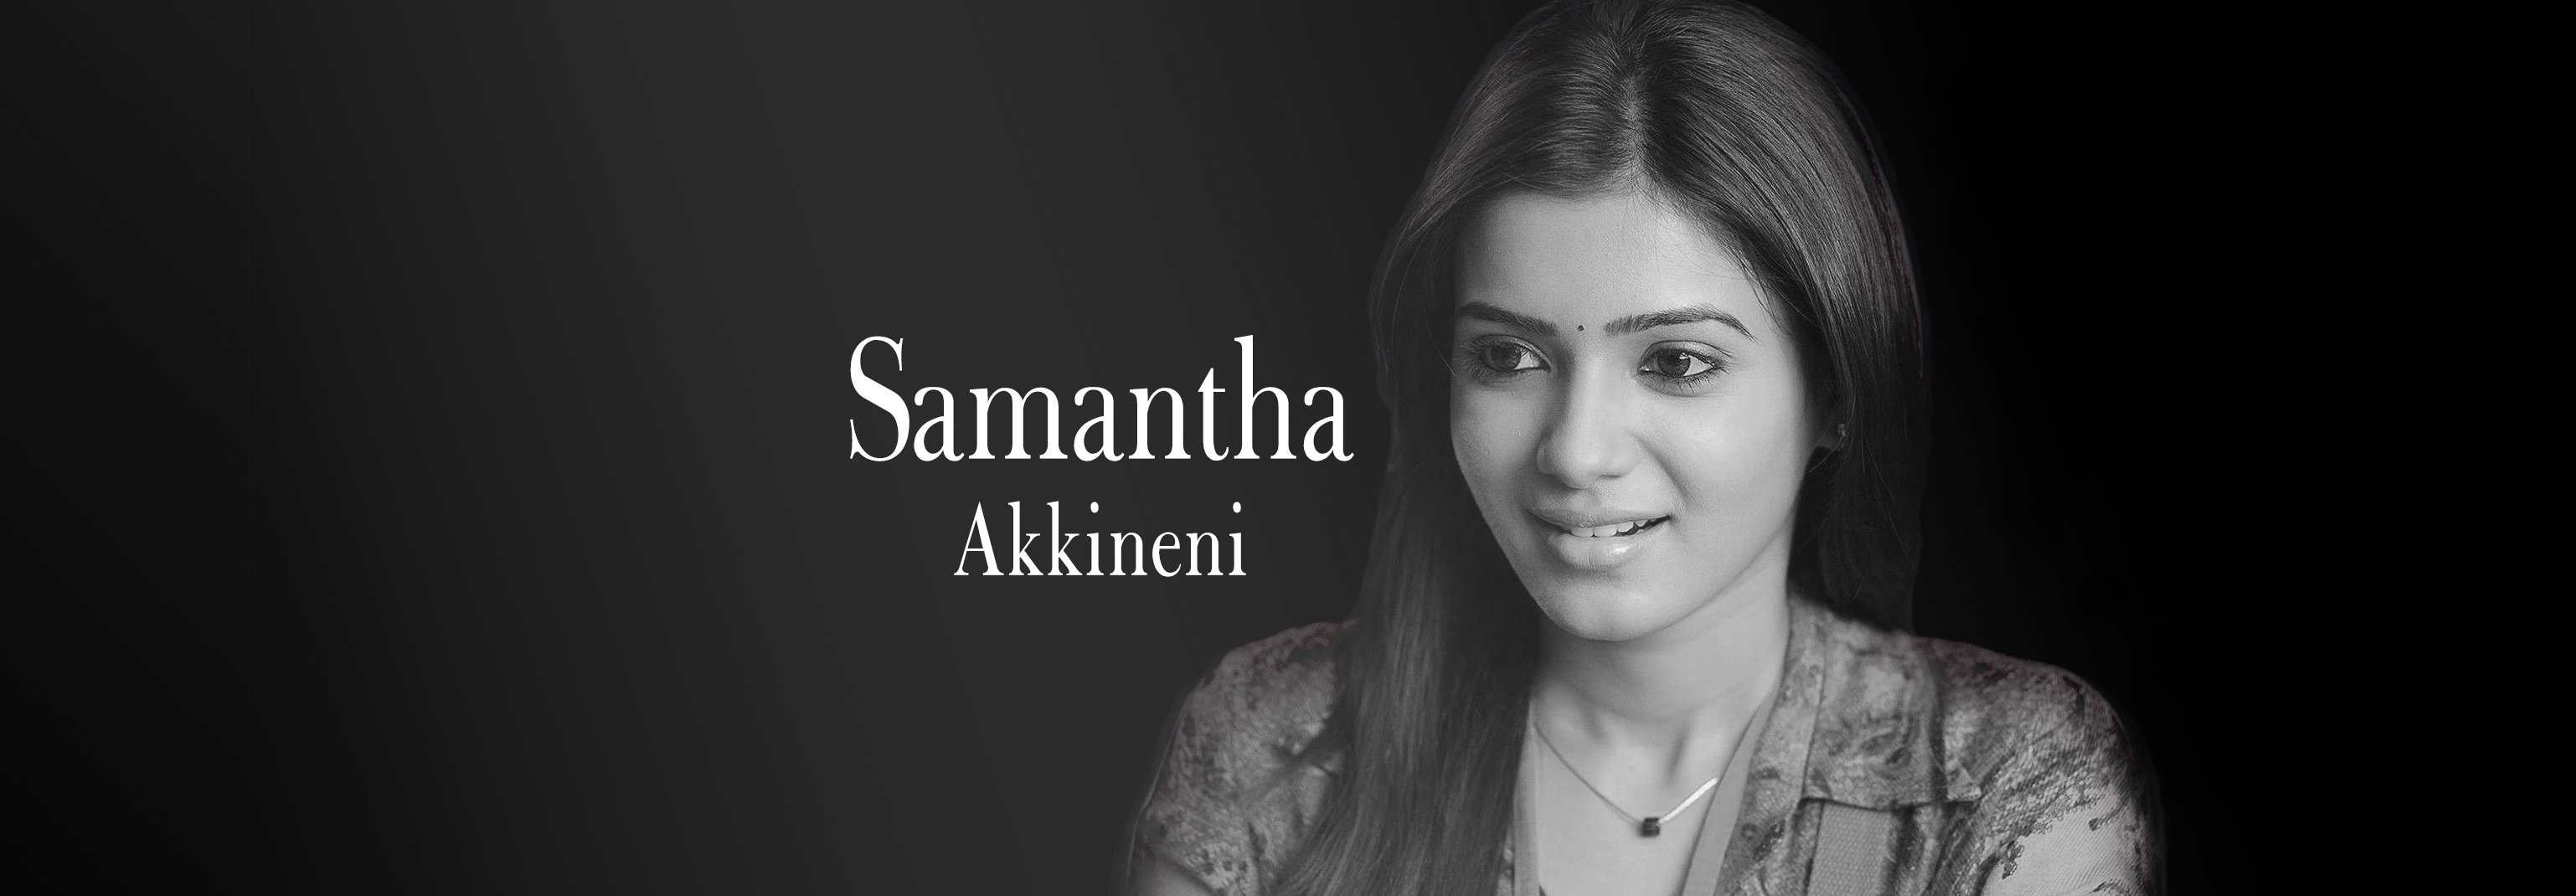 samantha-akkineni-a-mystical-beauty-that-bewitched-the-film-industry-for-11-years-image